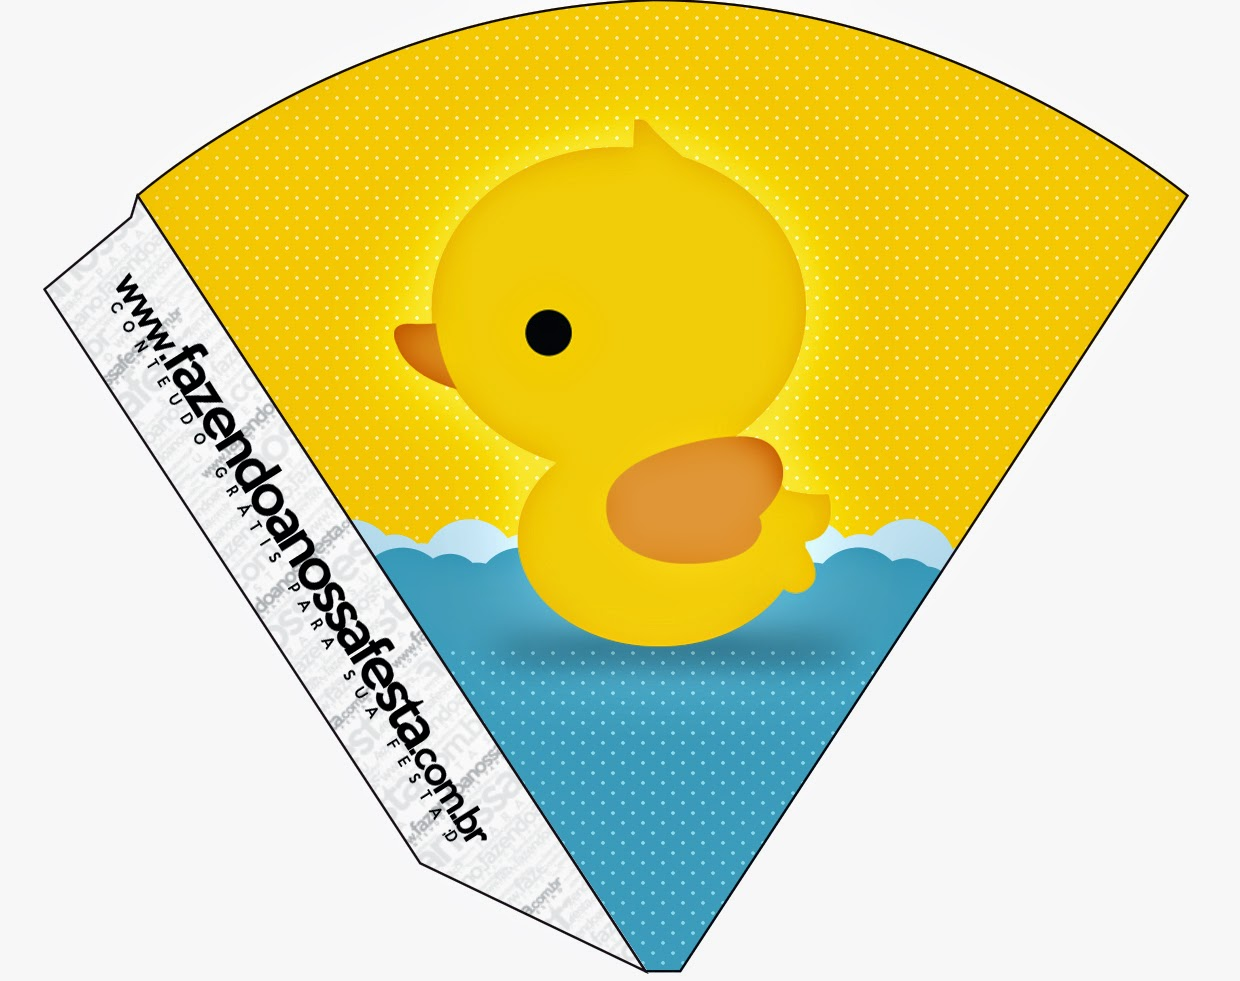 photograph about Rubber Ducky Printable named Rubber Ducky: Totally free Social gathering Printables. - Oh My Fiesta! within just english